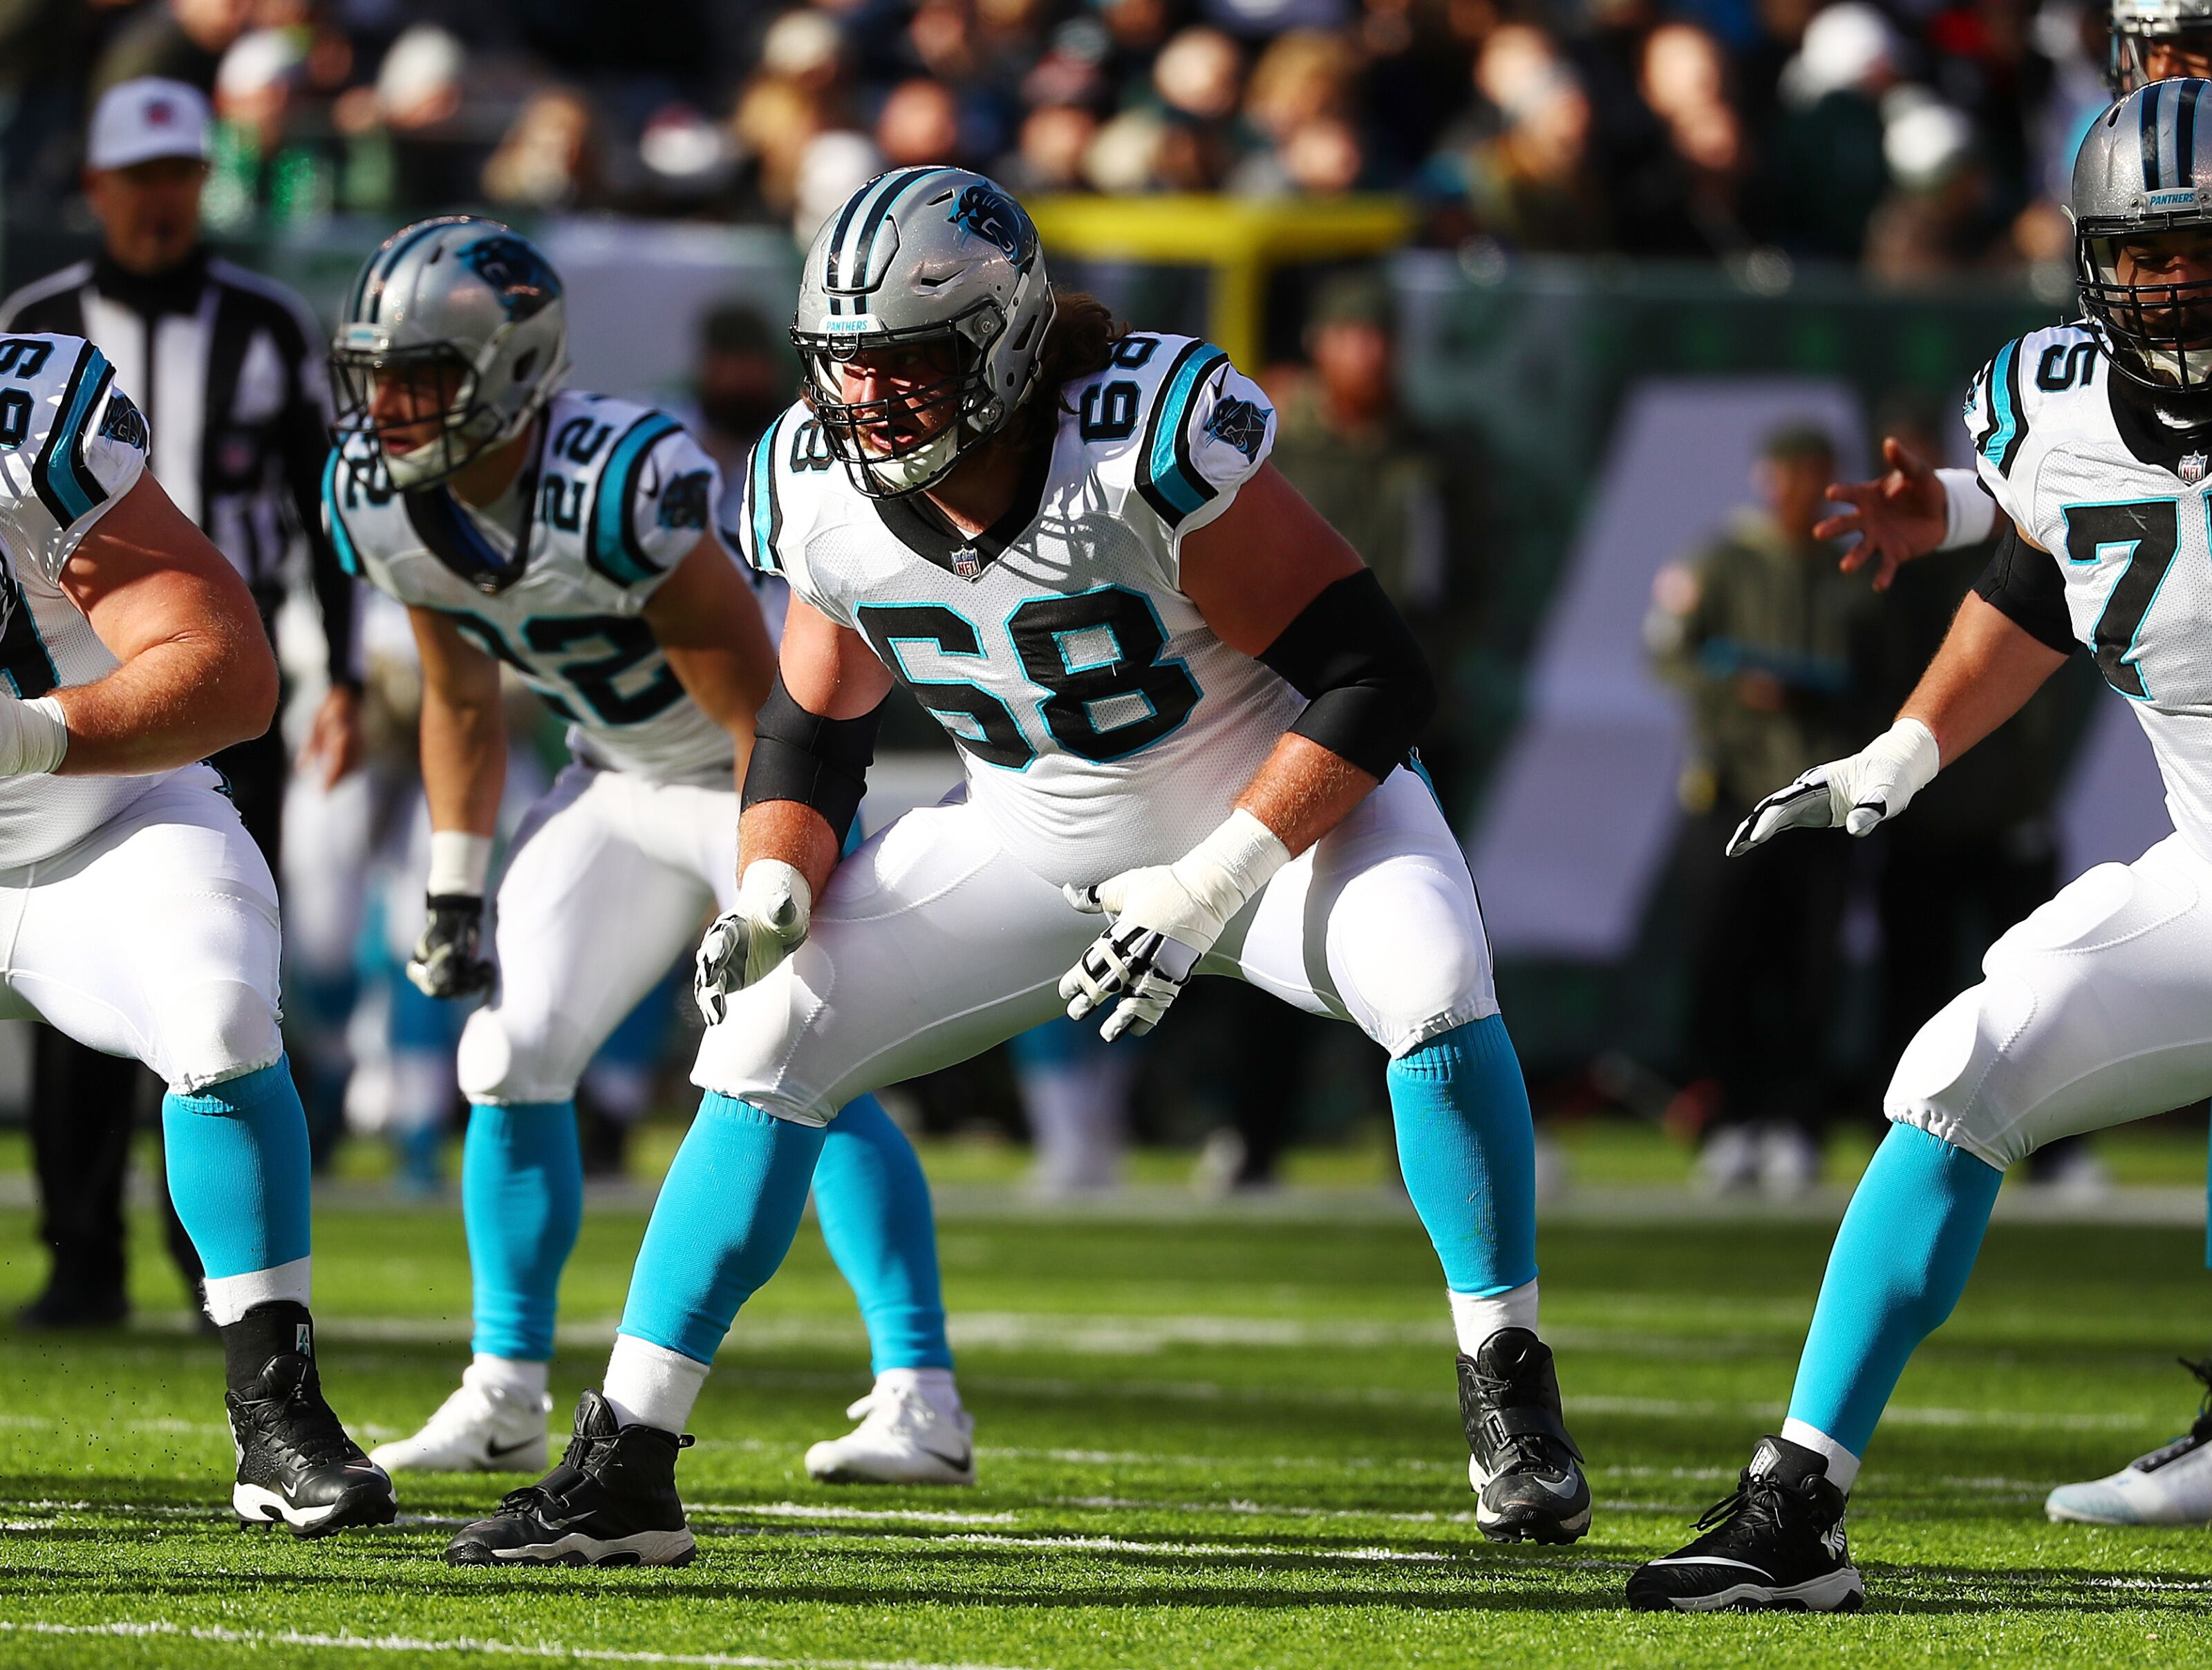 Jaguars place guard Andrew Norwell on injured reserve